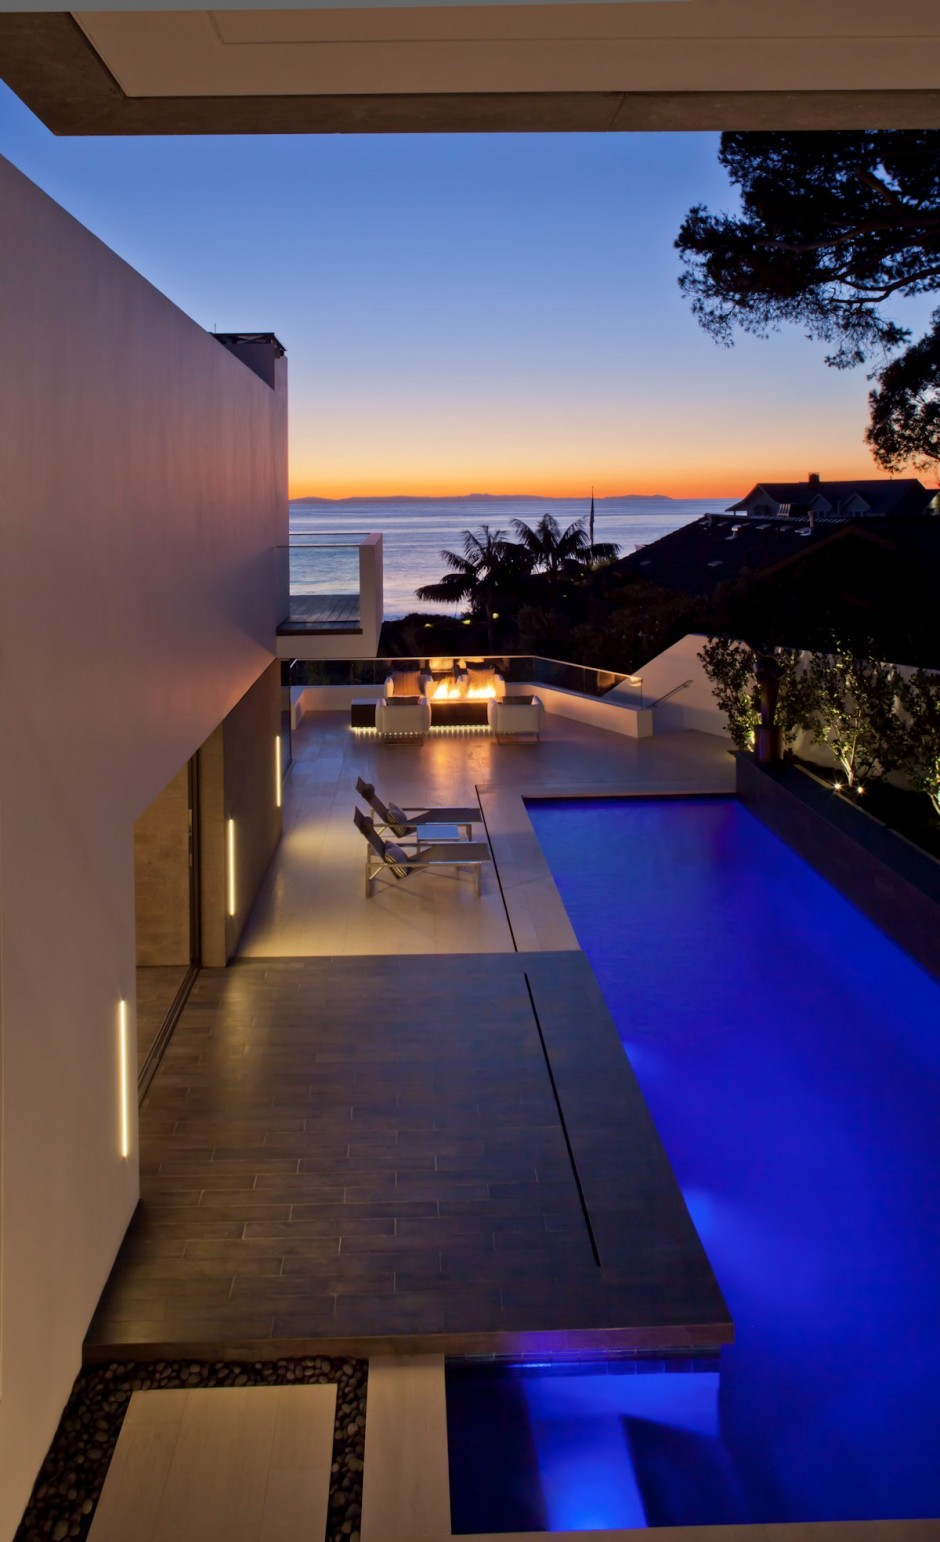 Private Pool - Oceanfront house with pool california